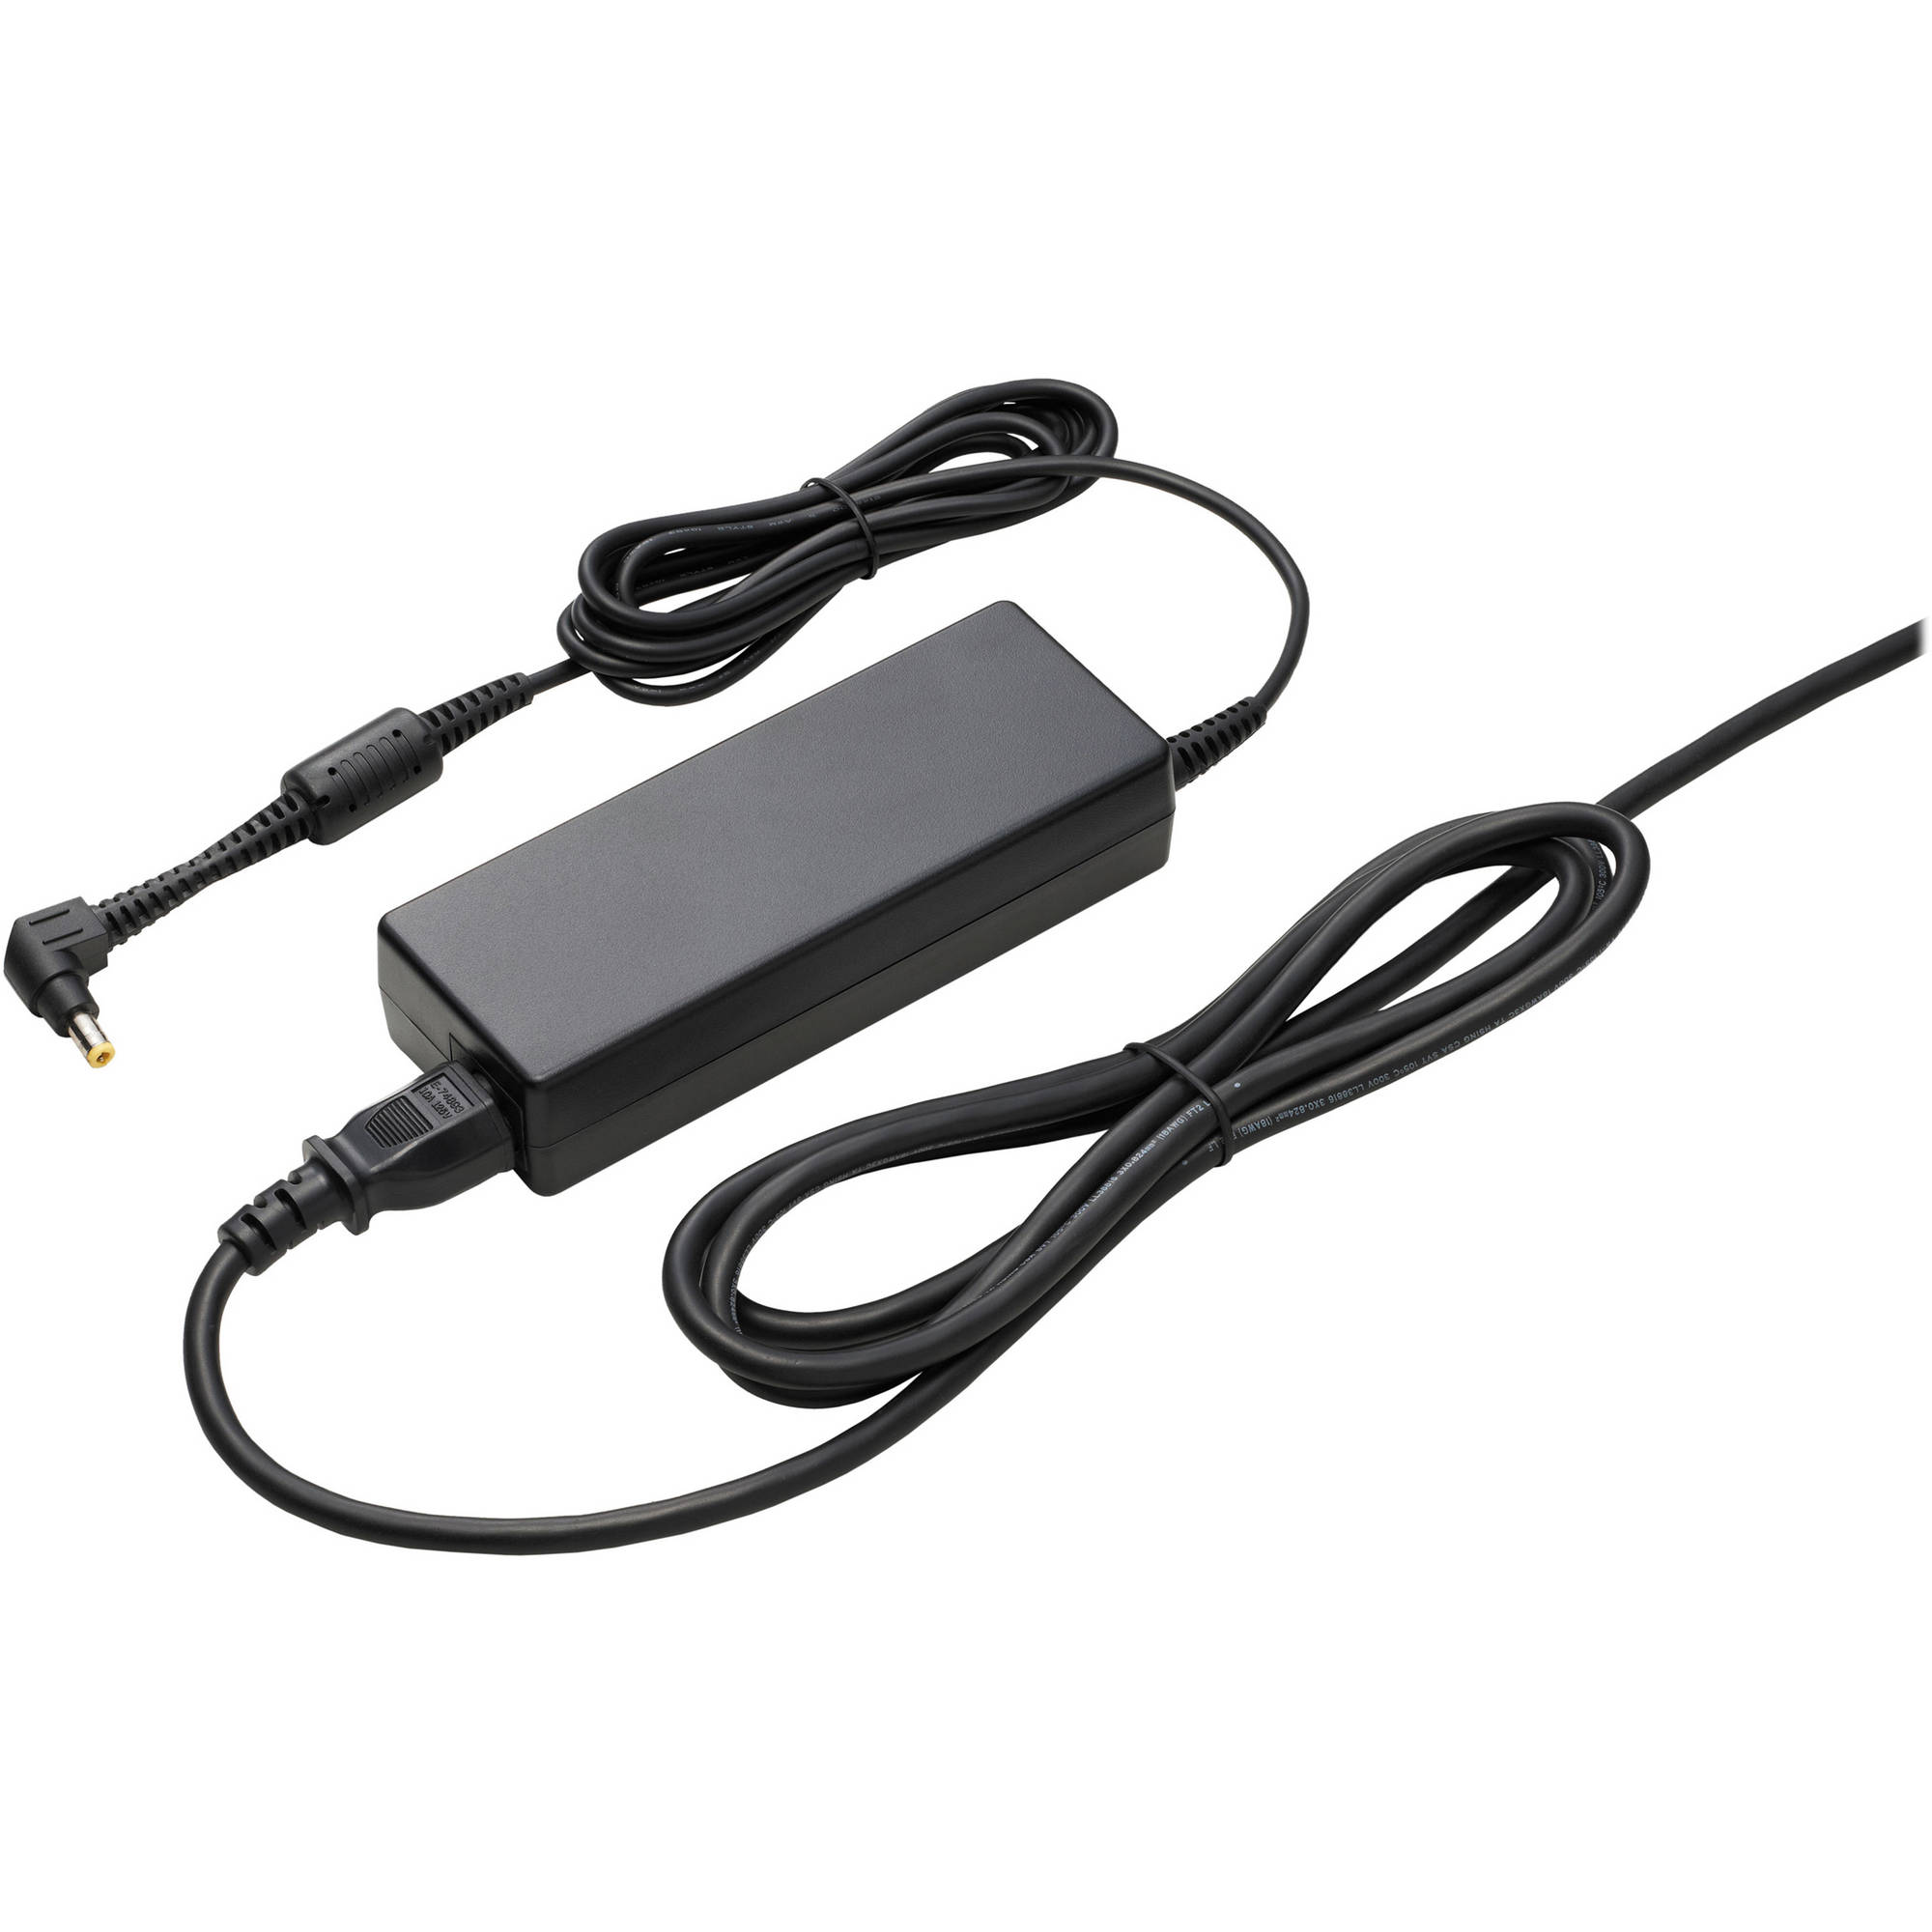 SLLEA AC//DC Adapter for Panasonic Toughbook CF-54 CF-54A2900CM CF-54AX001CM I5-5300U Laptop Power Supply Cord Cable PS Charger PSU